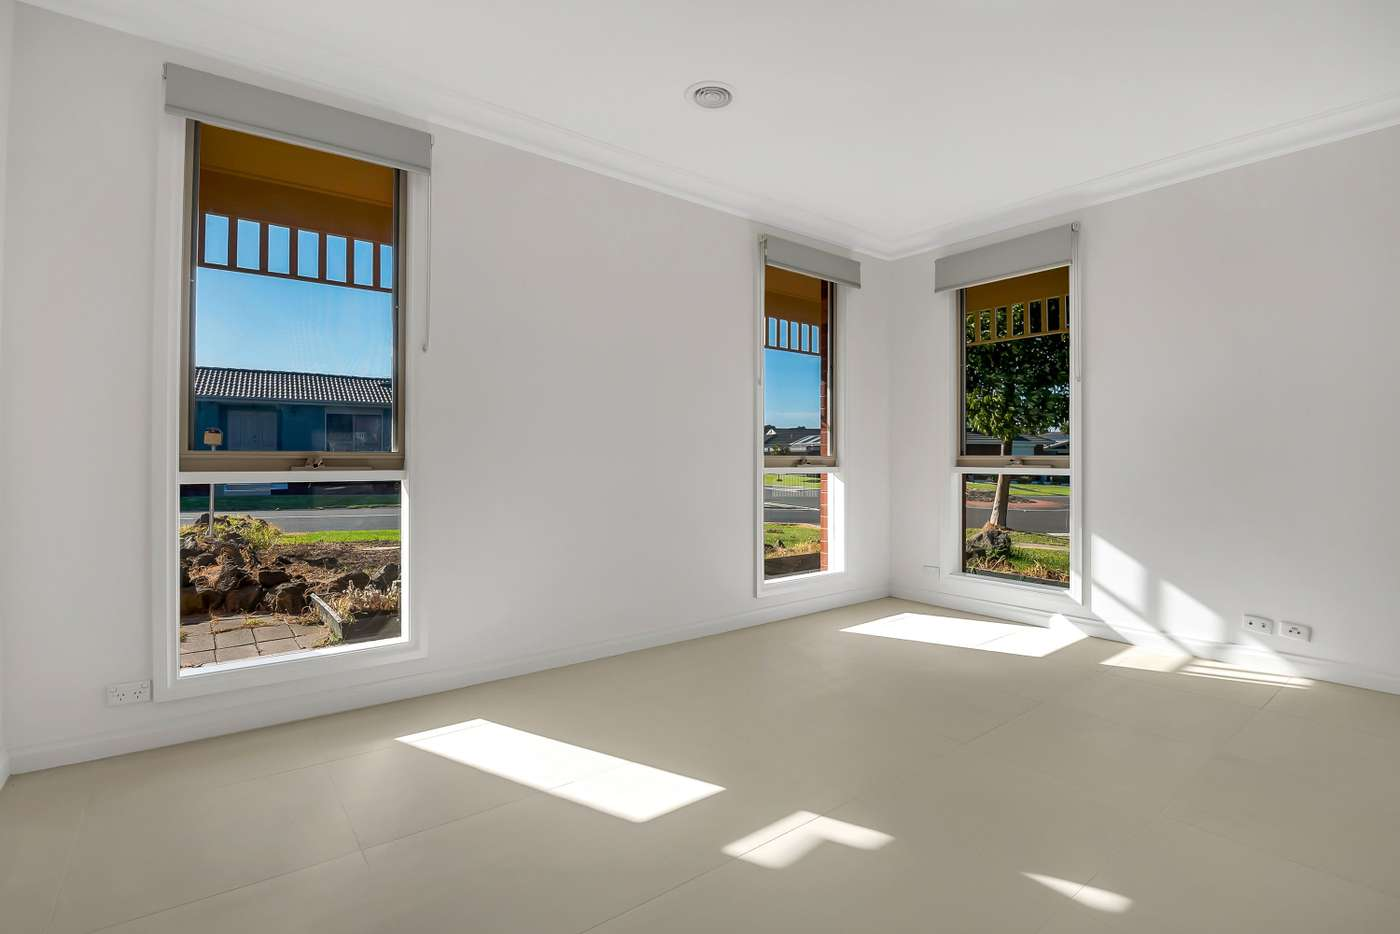 Sixth view of Homely house listing, 46 Stainsby Crescent, Roxburgh Park VIC 3064